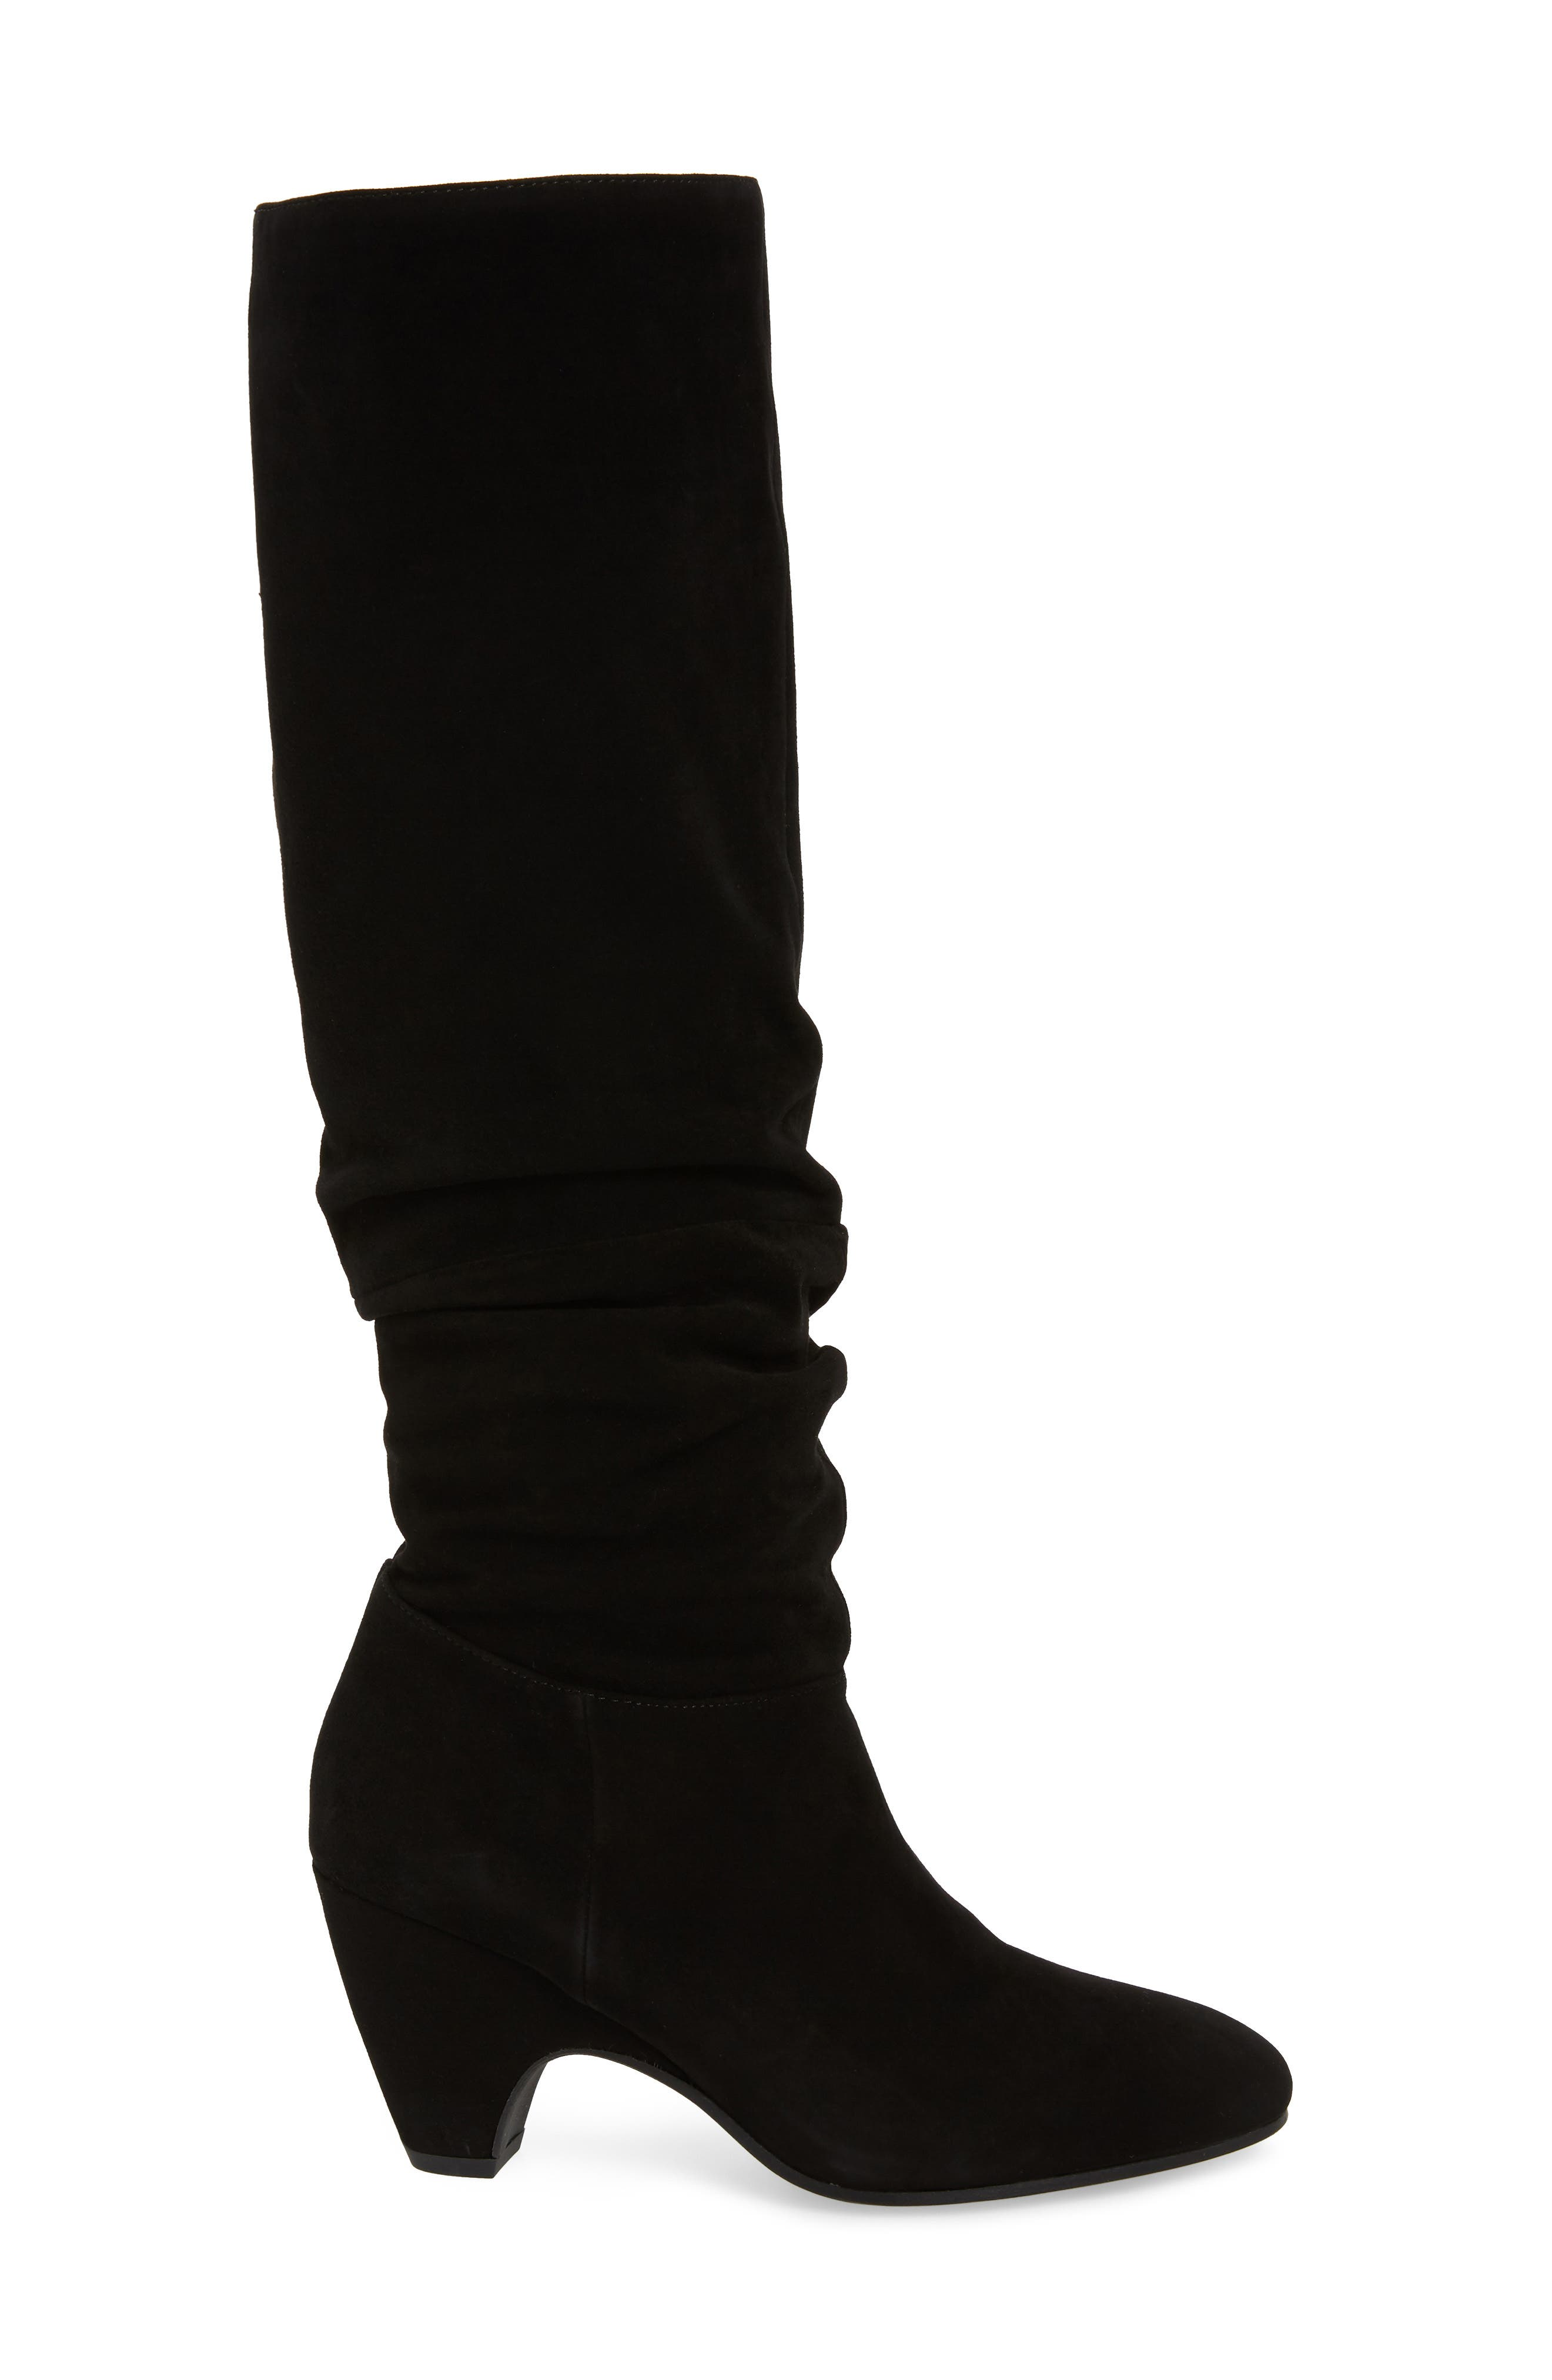 Ditto Knee High Boot,                             Alternate thumbnail 3, color,                             BLACK SUEDE